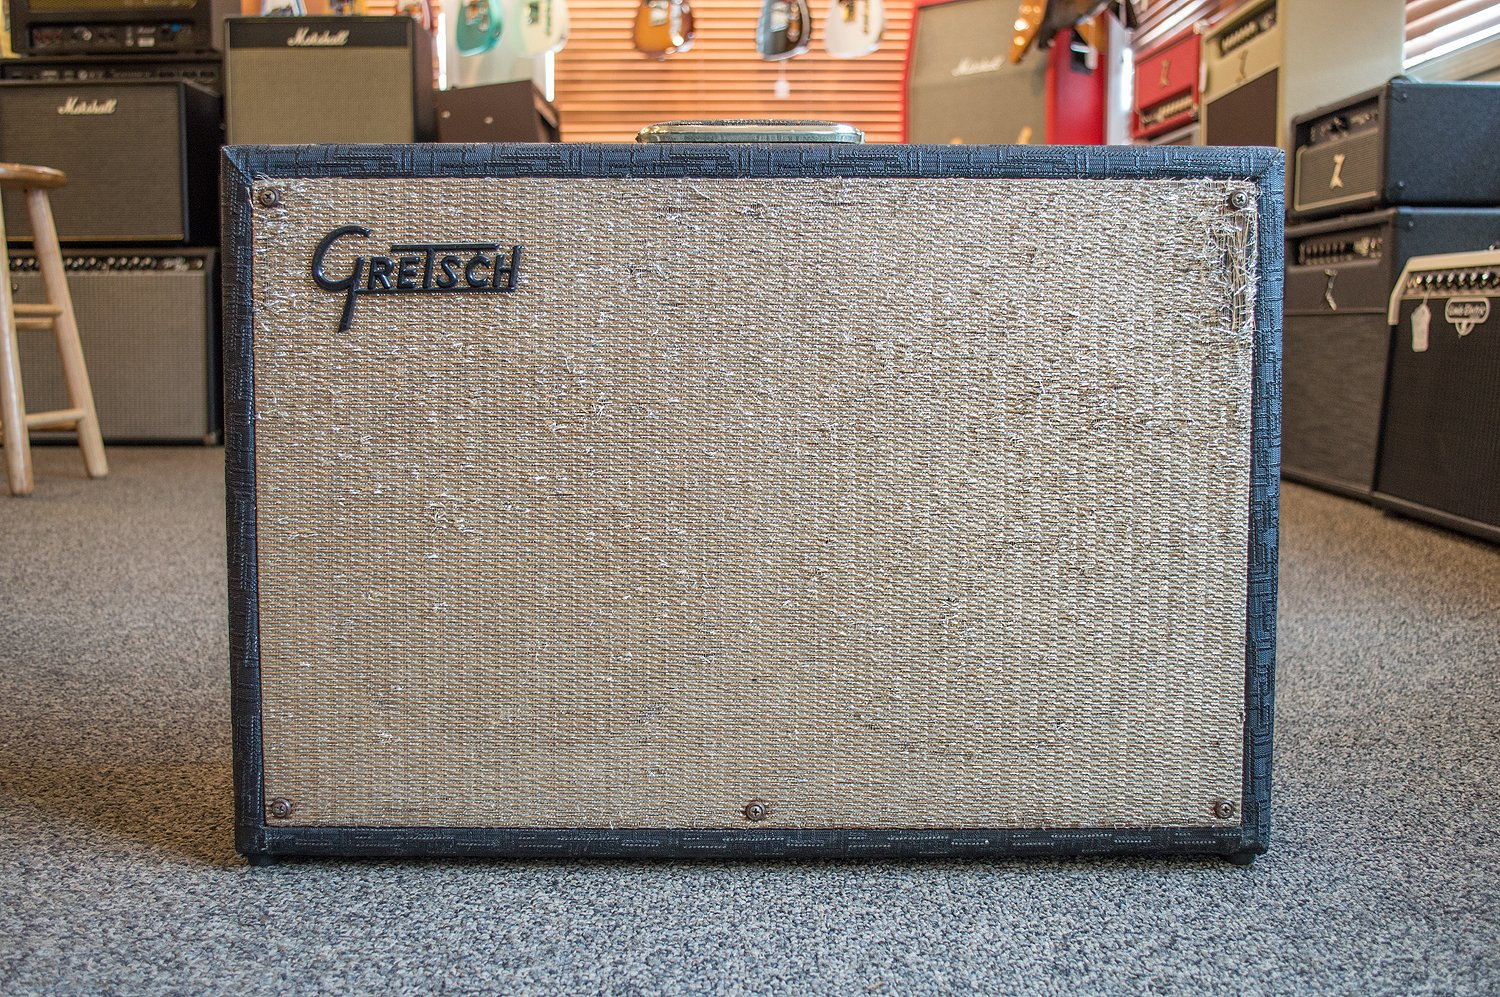 Gretsch 6161 Combo (USED) - SOLD